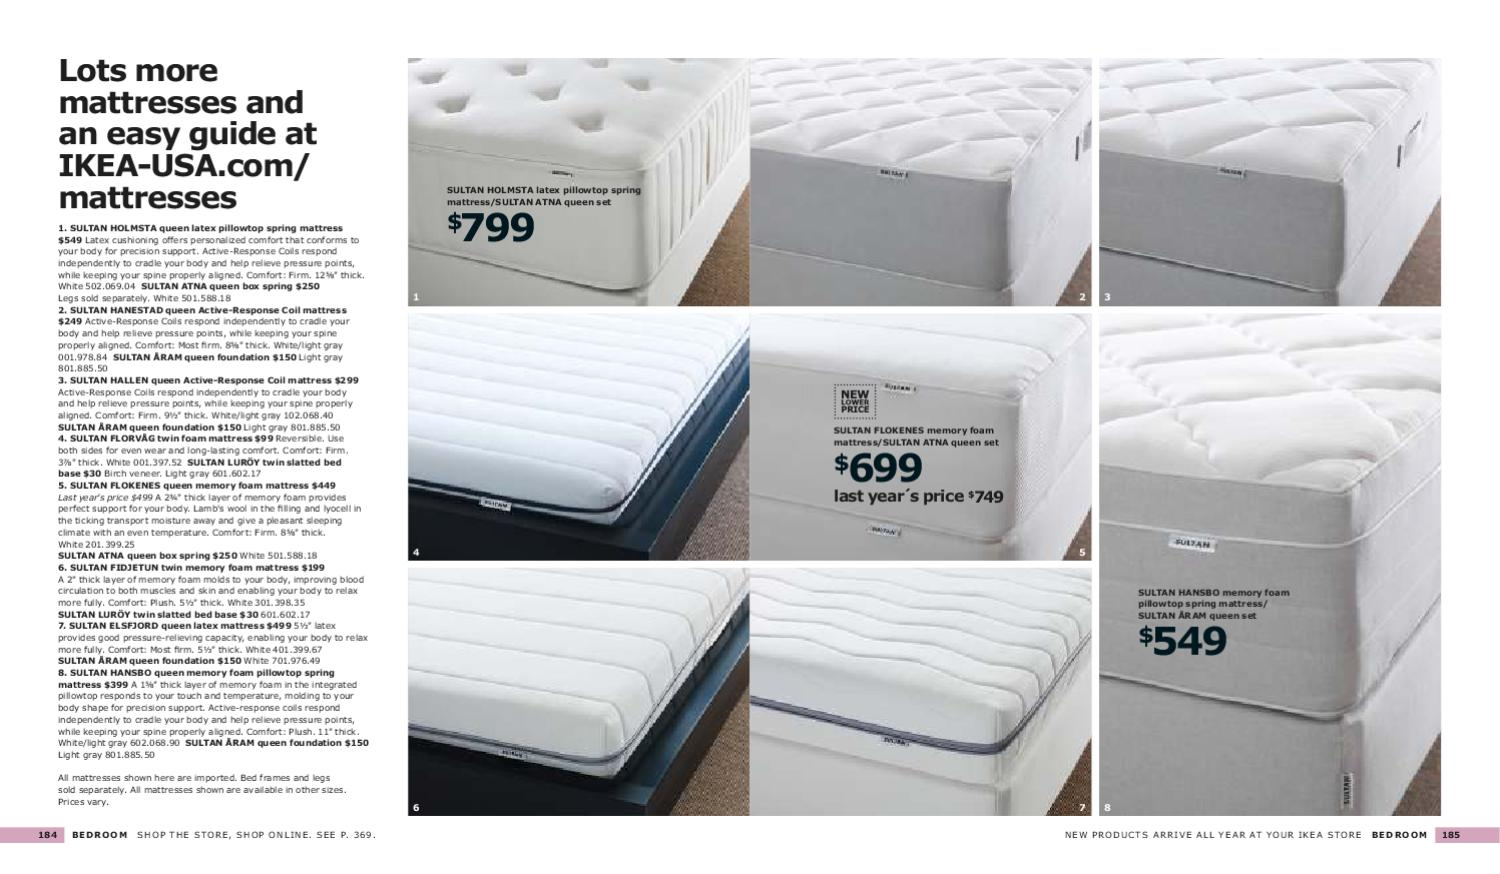 Ikea Mattresses Can Be Fun For Everyone